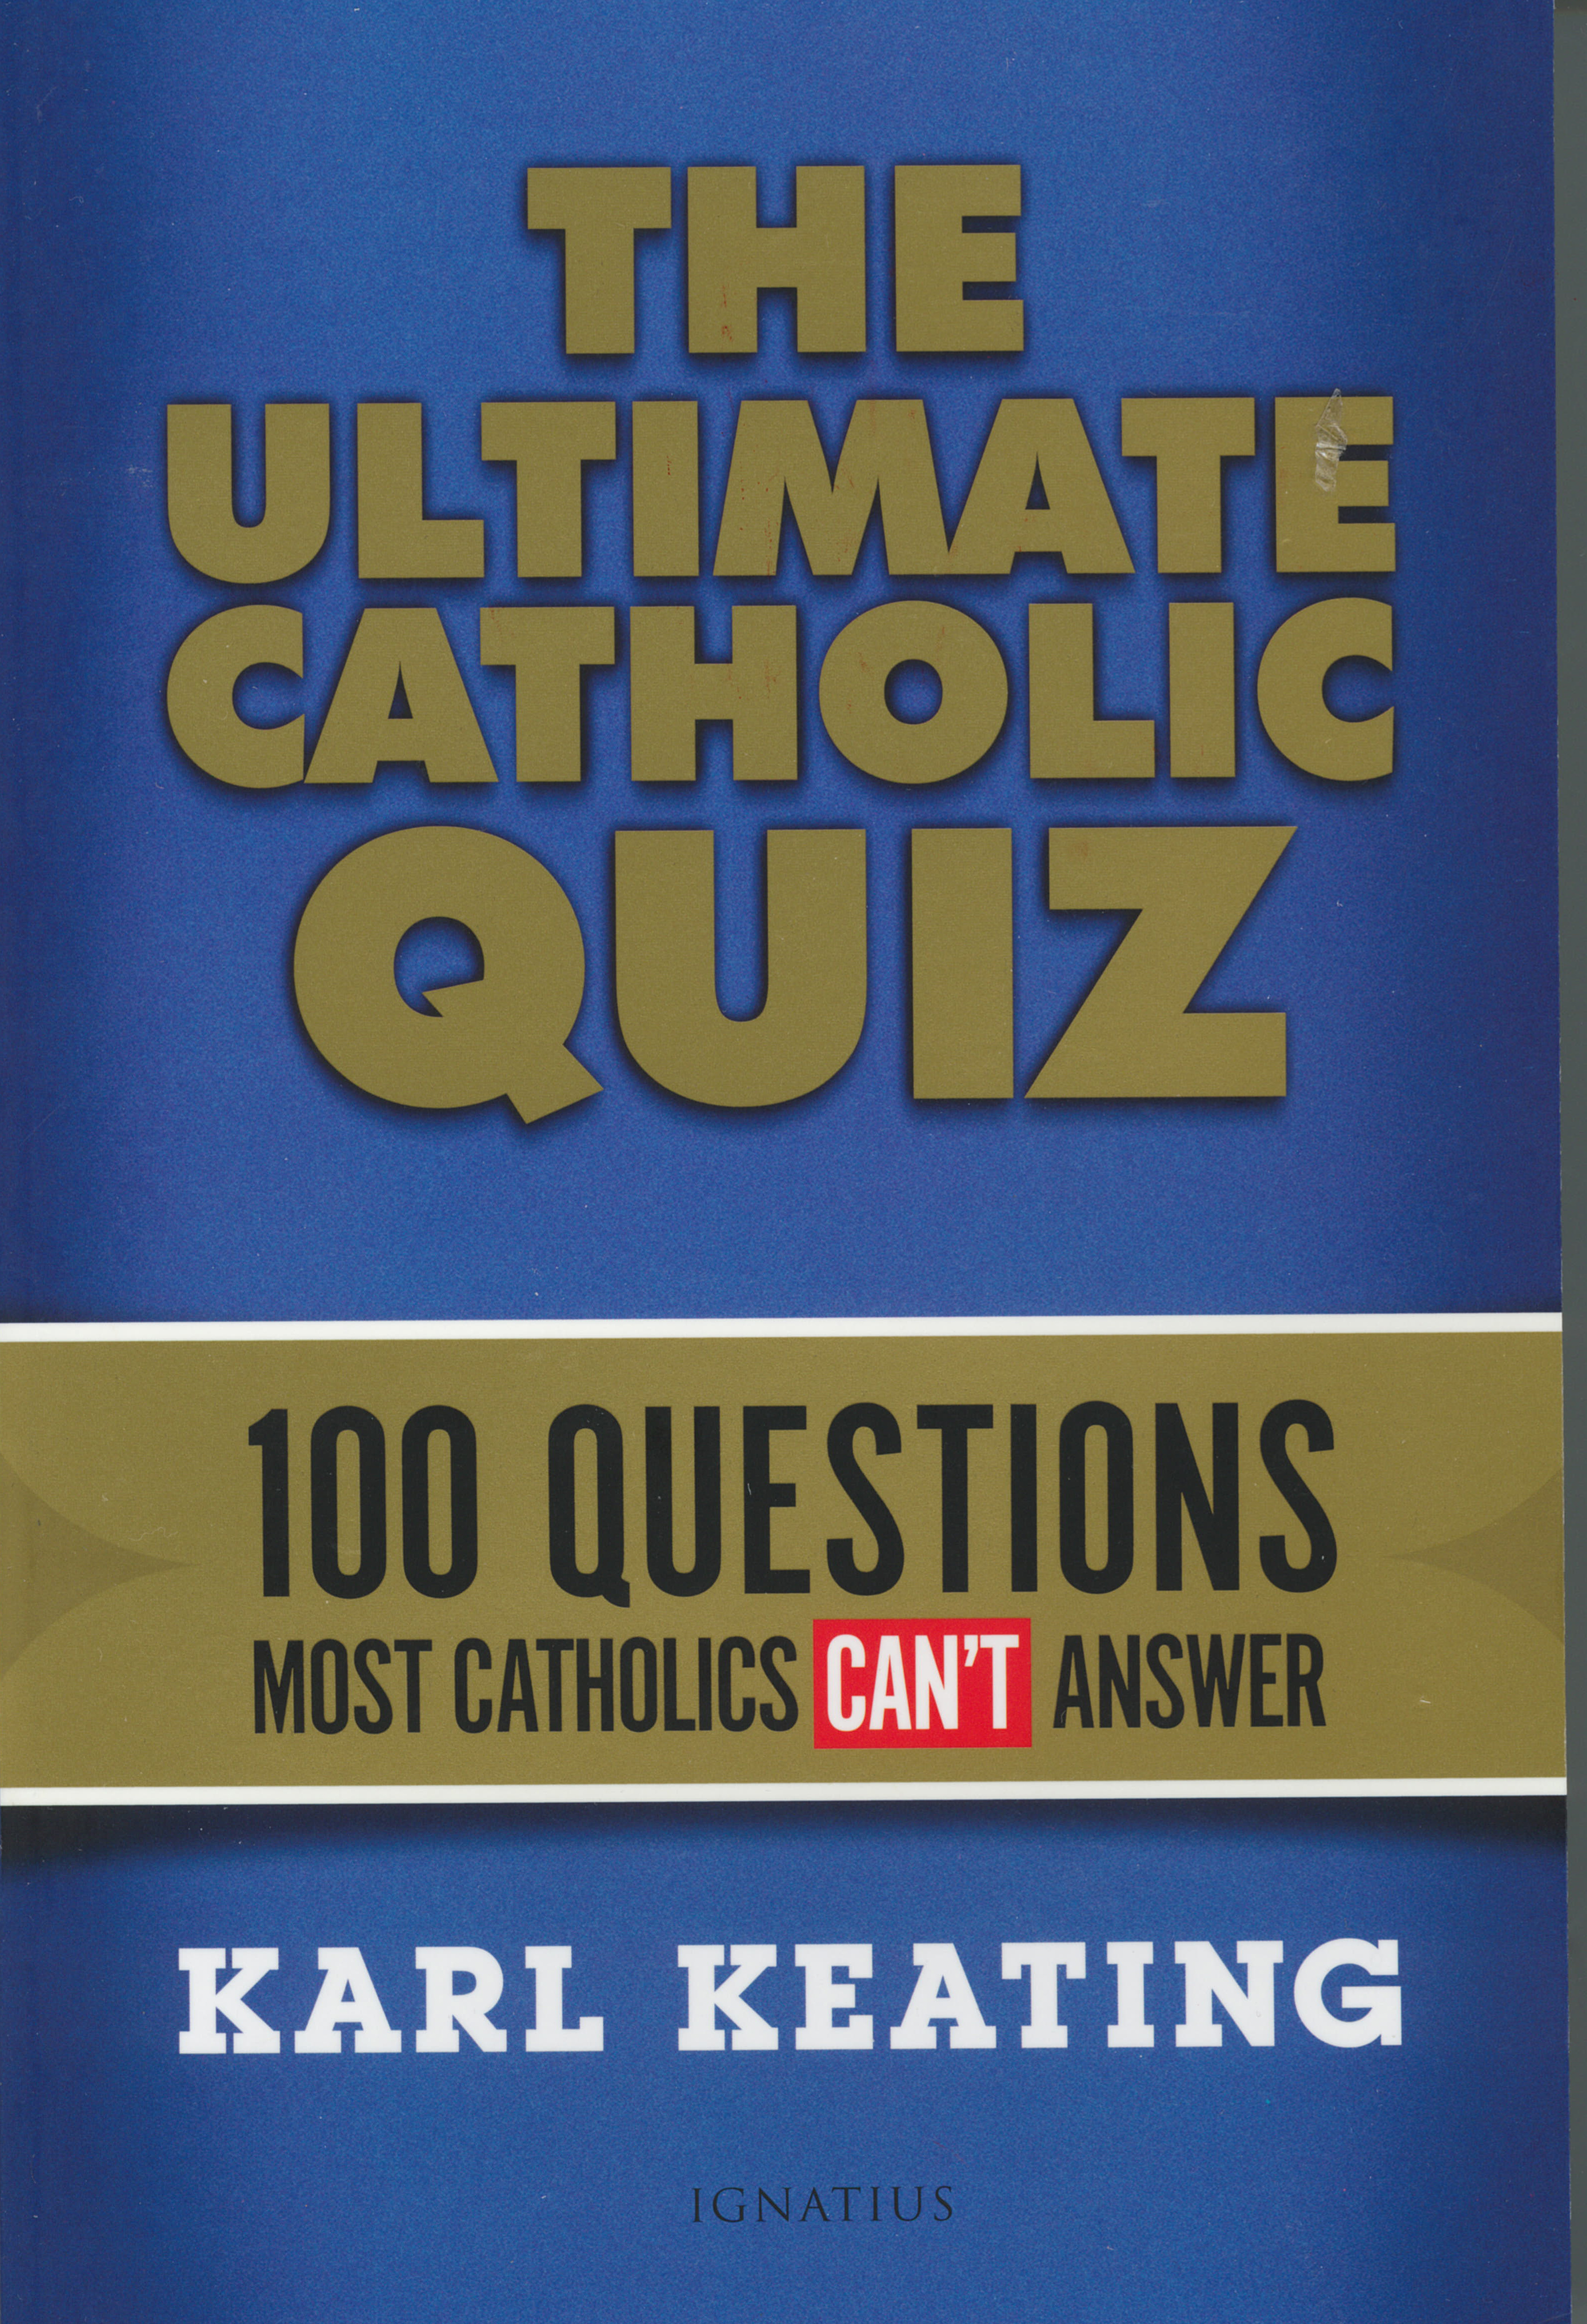 The Ultimate Catholic Quiz: 100 Questions Most Catholics Can't Answer by Karl Keating ISBN: 1621640248 EAN: 9781621640240